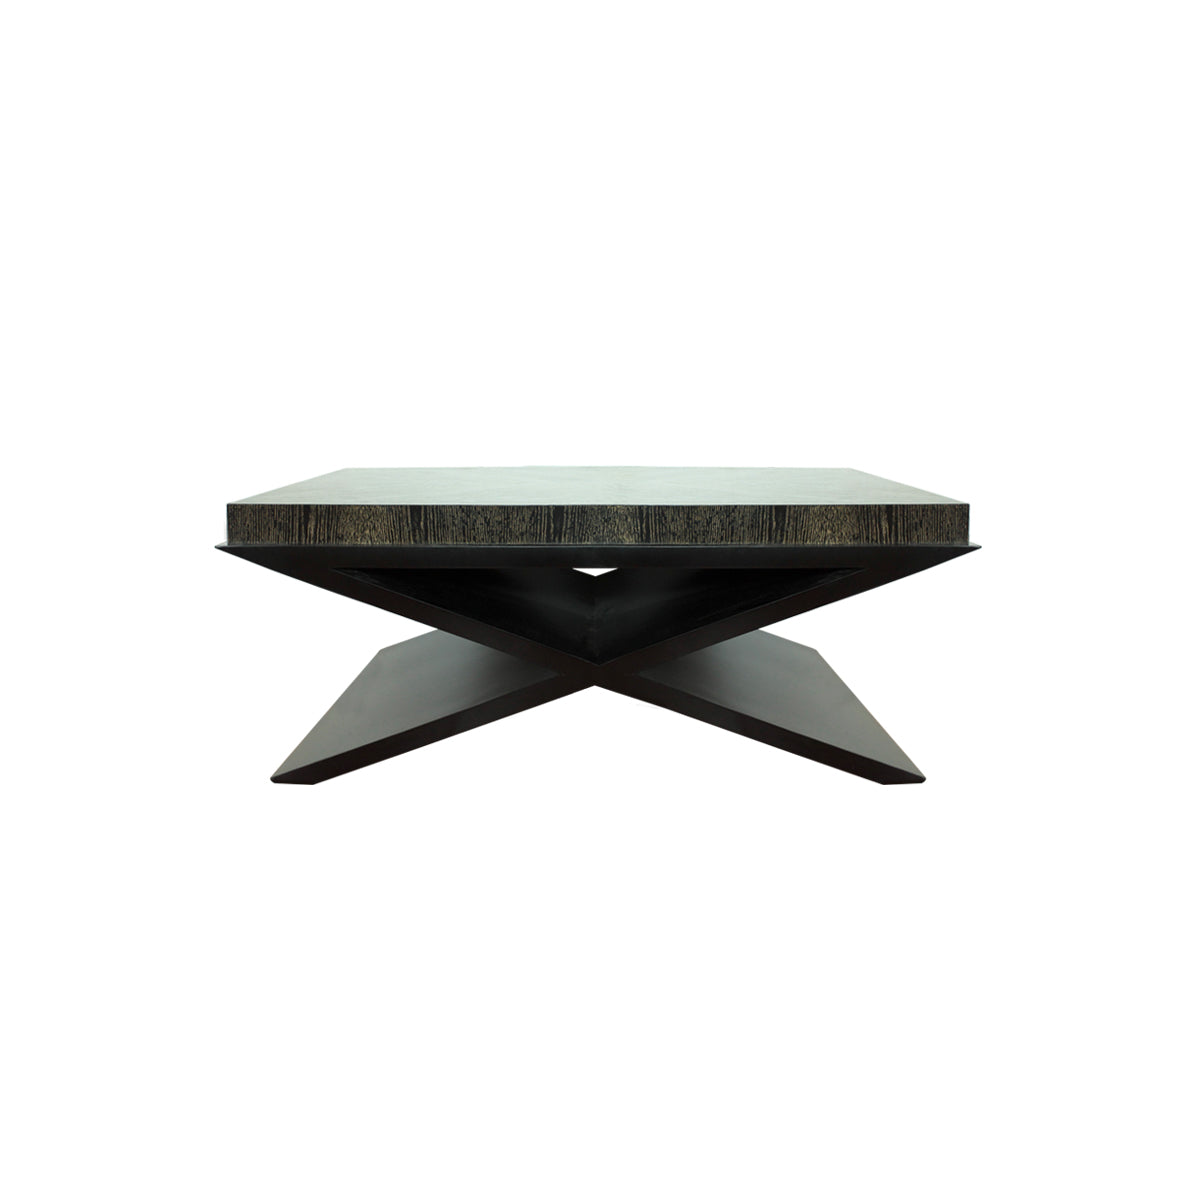 furniture jakarta furniture bali furniture surabaya coffee table dekoruma meja